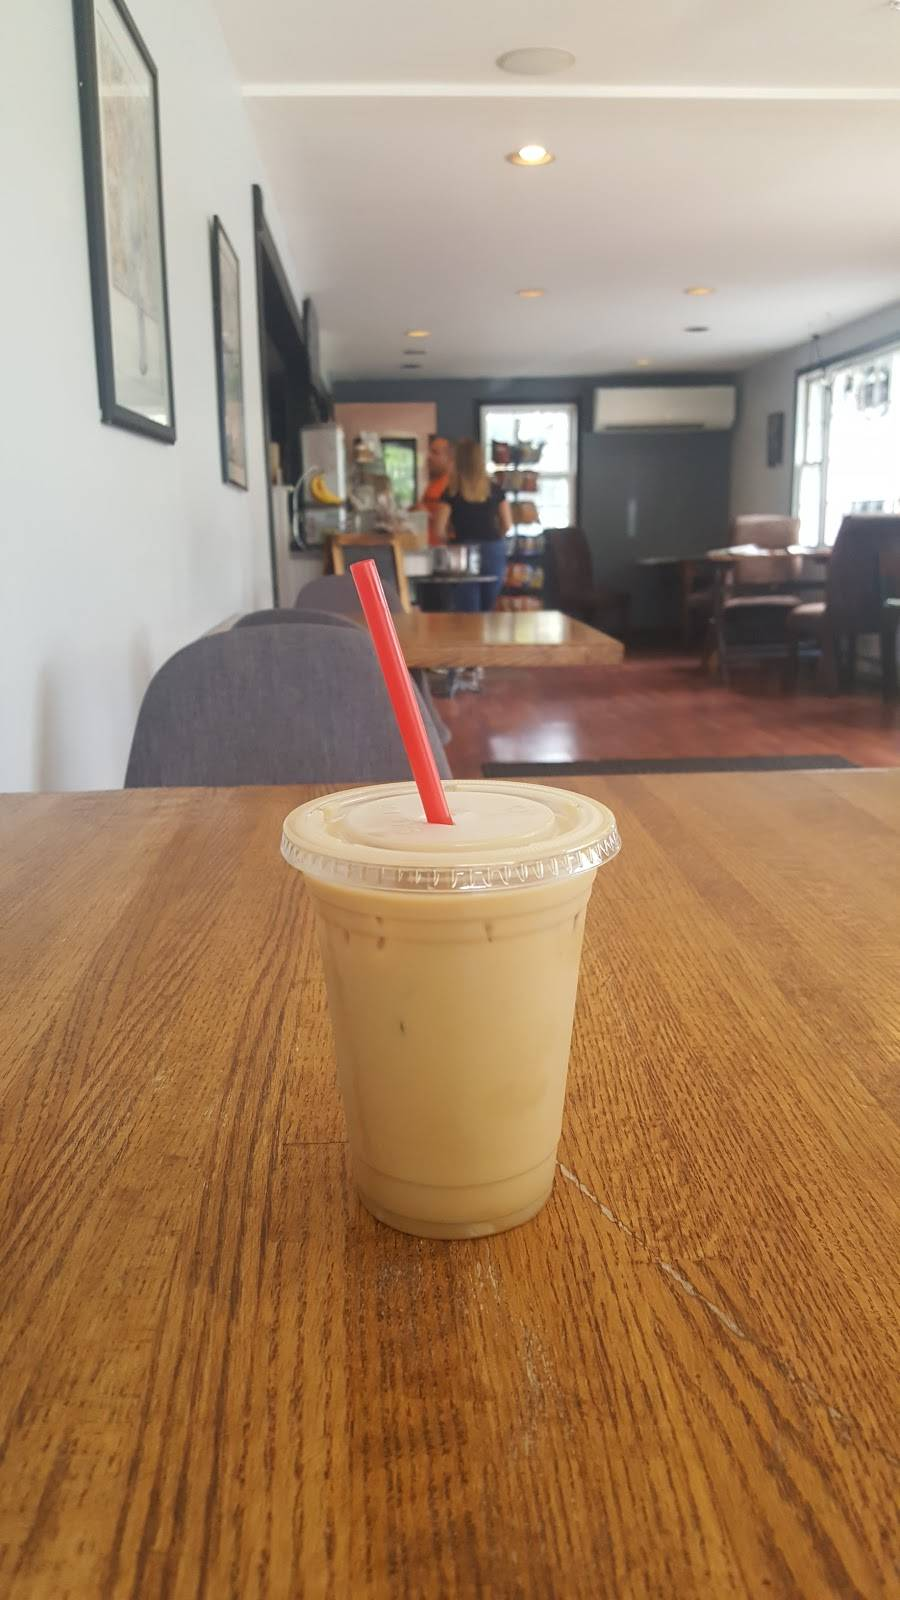 Jesters Coffee   cafe   331 Federal Rd, Brookfield, CT 06804, USA   2035468936 OR +1 203-546-8936